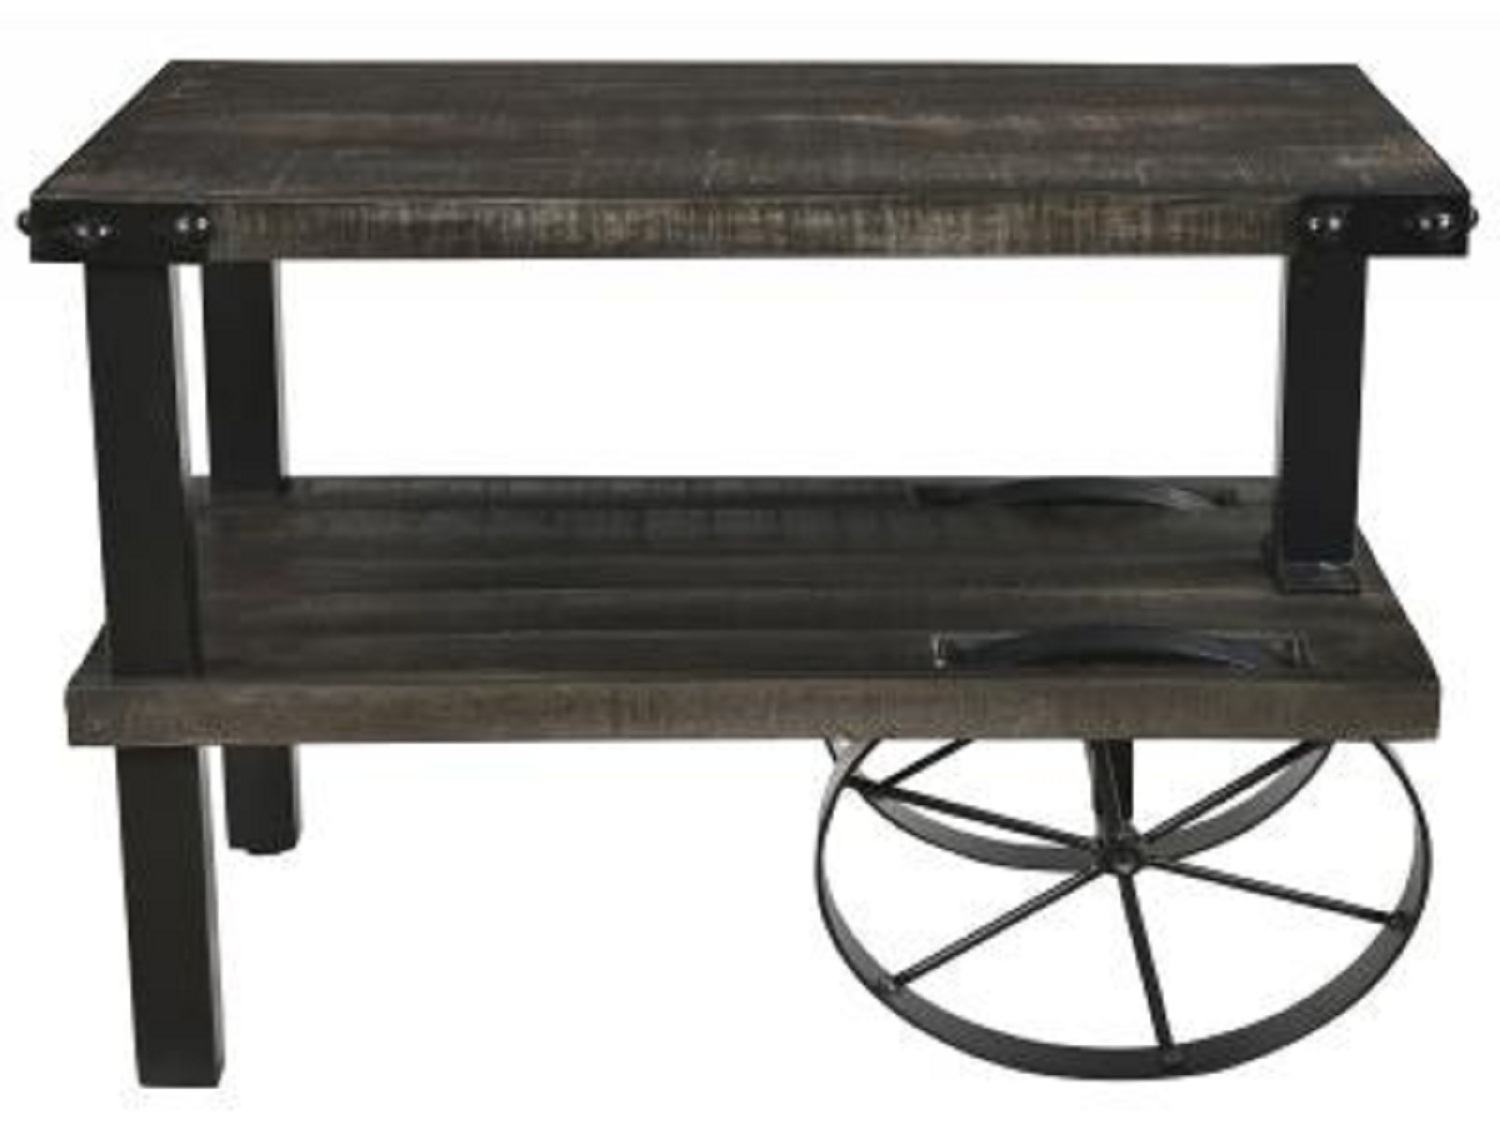 ZAHIR-ACCENT TABLE-DISTRESSED GREY, 841173026912, Console/Sofa Tables, ZAHIR-ACCENT TABLE-DISTRESSED GREY from Dropship by Midha Furniture serving Brampton, Mississauga, Etobicoke, Toronto, Scraborough, Caledon, Cambridge, Oakville, Markham, Ajax, Pickering, Oshawa, Richmondhill, Kitchener, Hamilton, Cambridge, Waterloo and GTA area